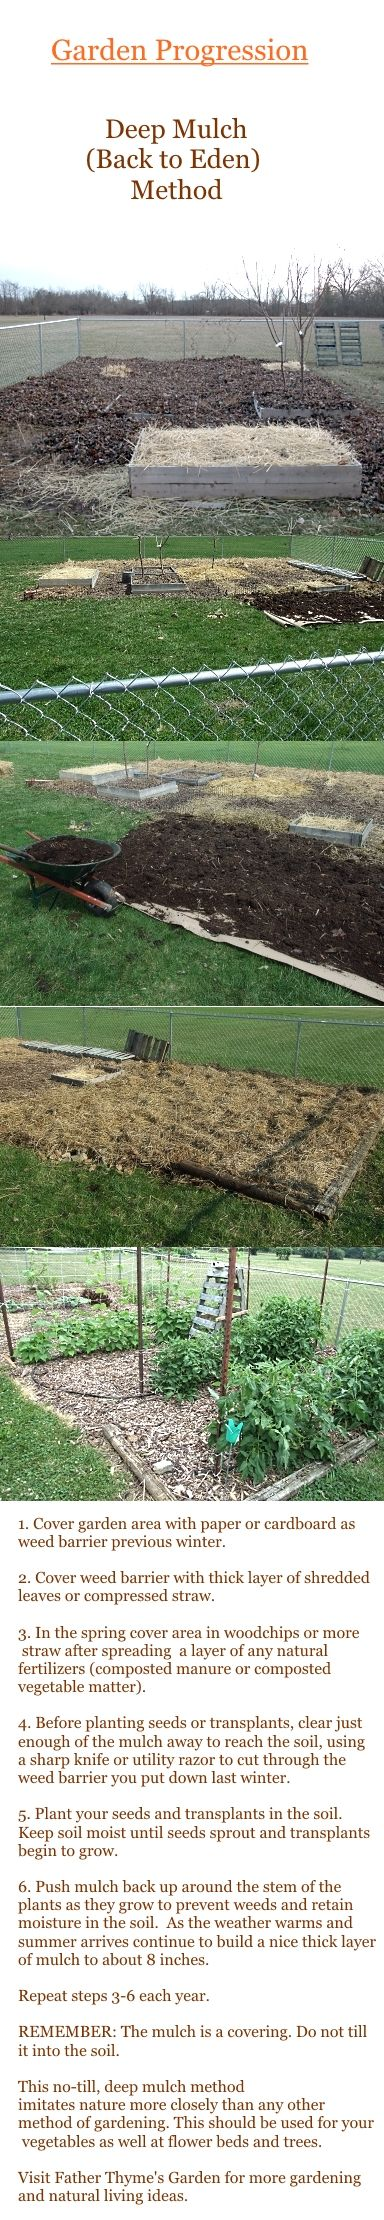 39 Best Images About Back To Eden Gardening On Pinterest Gardens Diy Compost Bin And Raised Beds